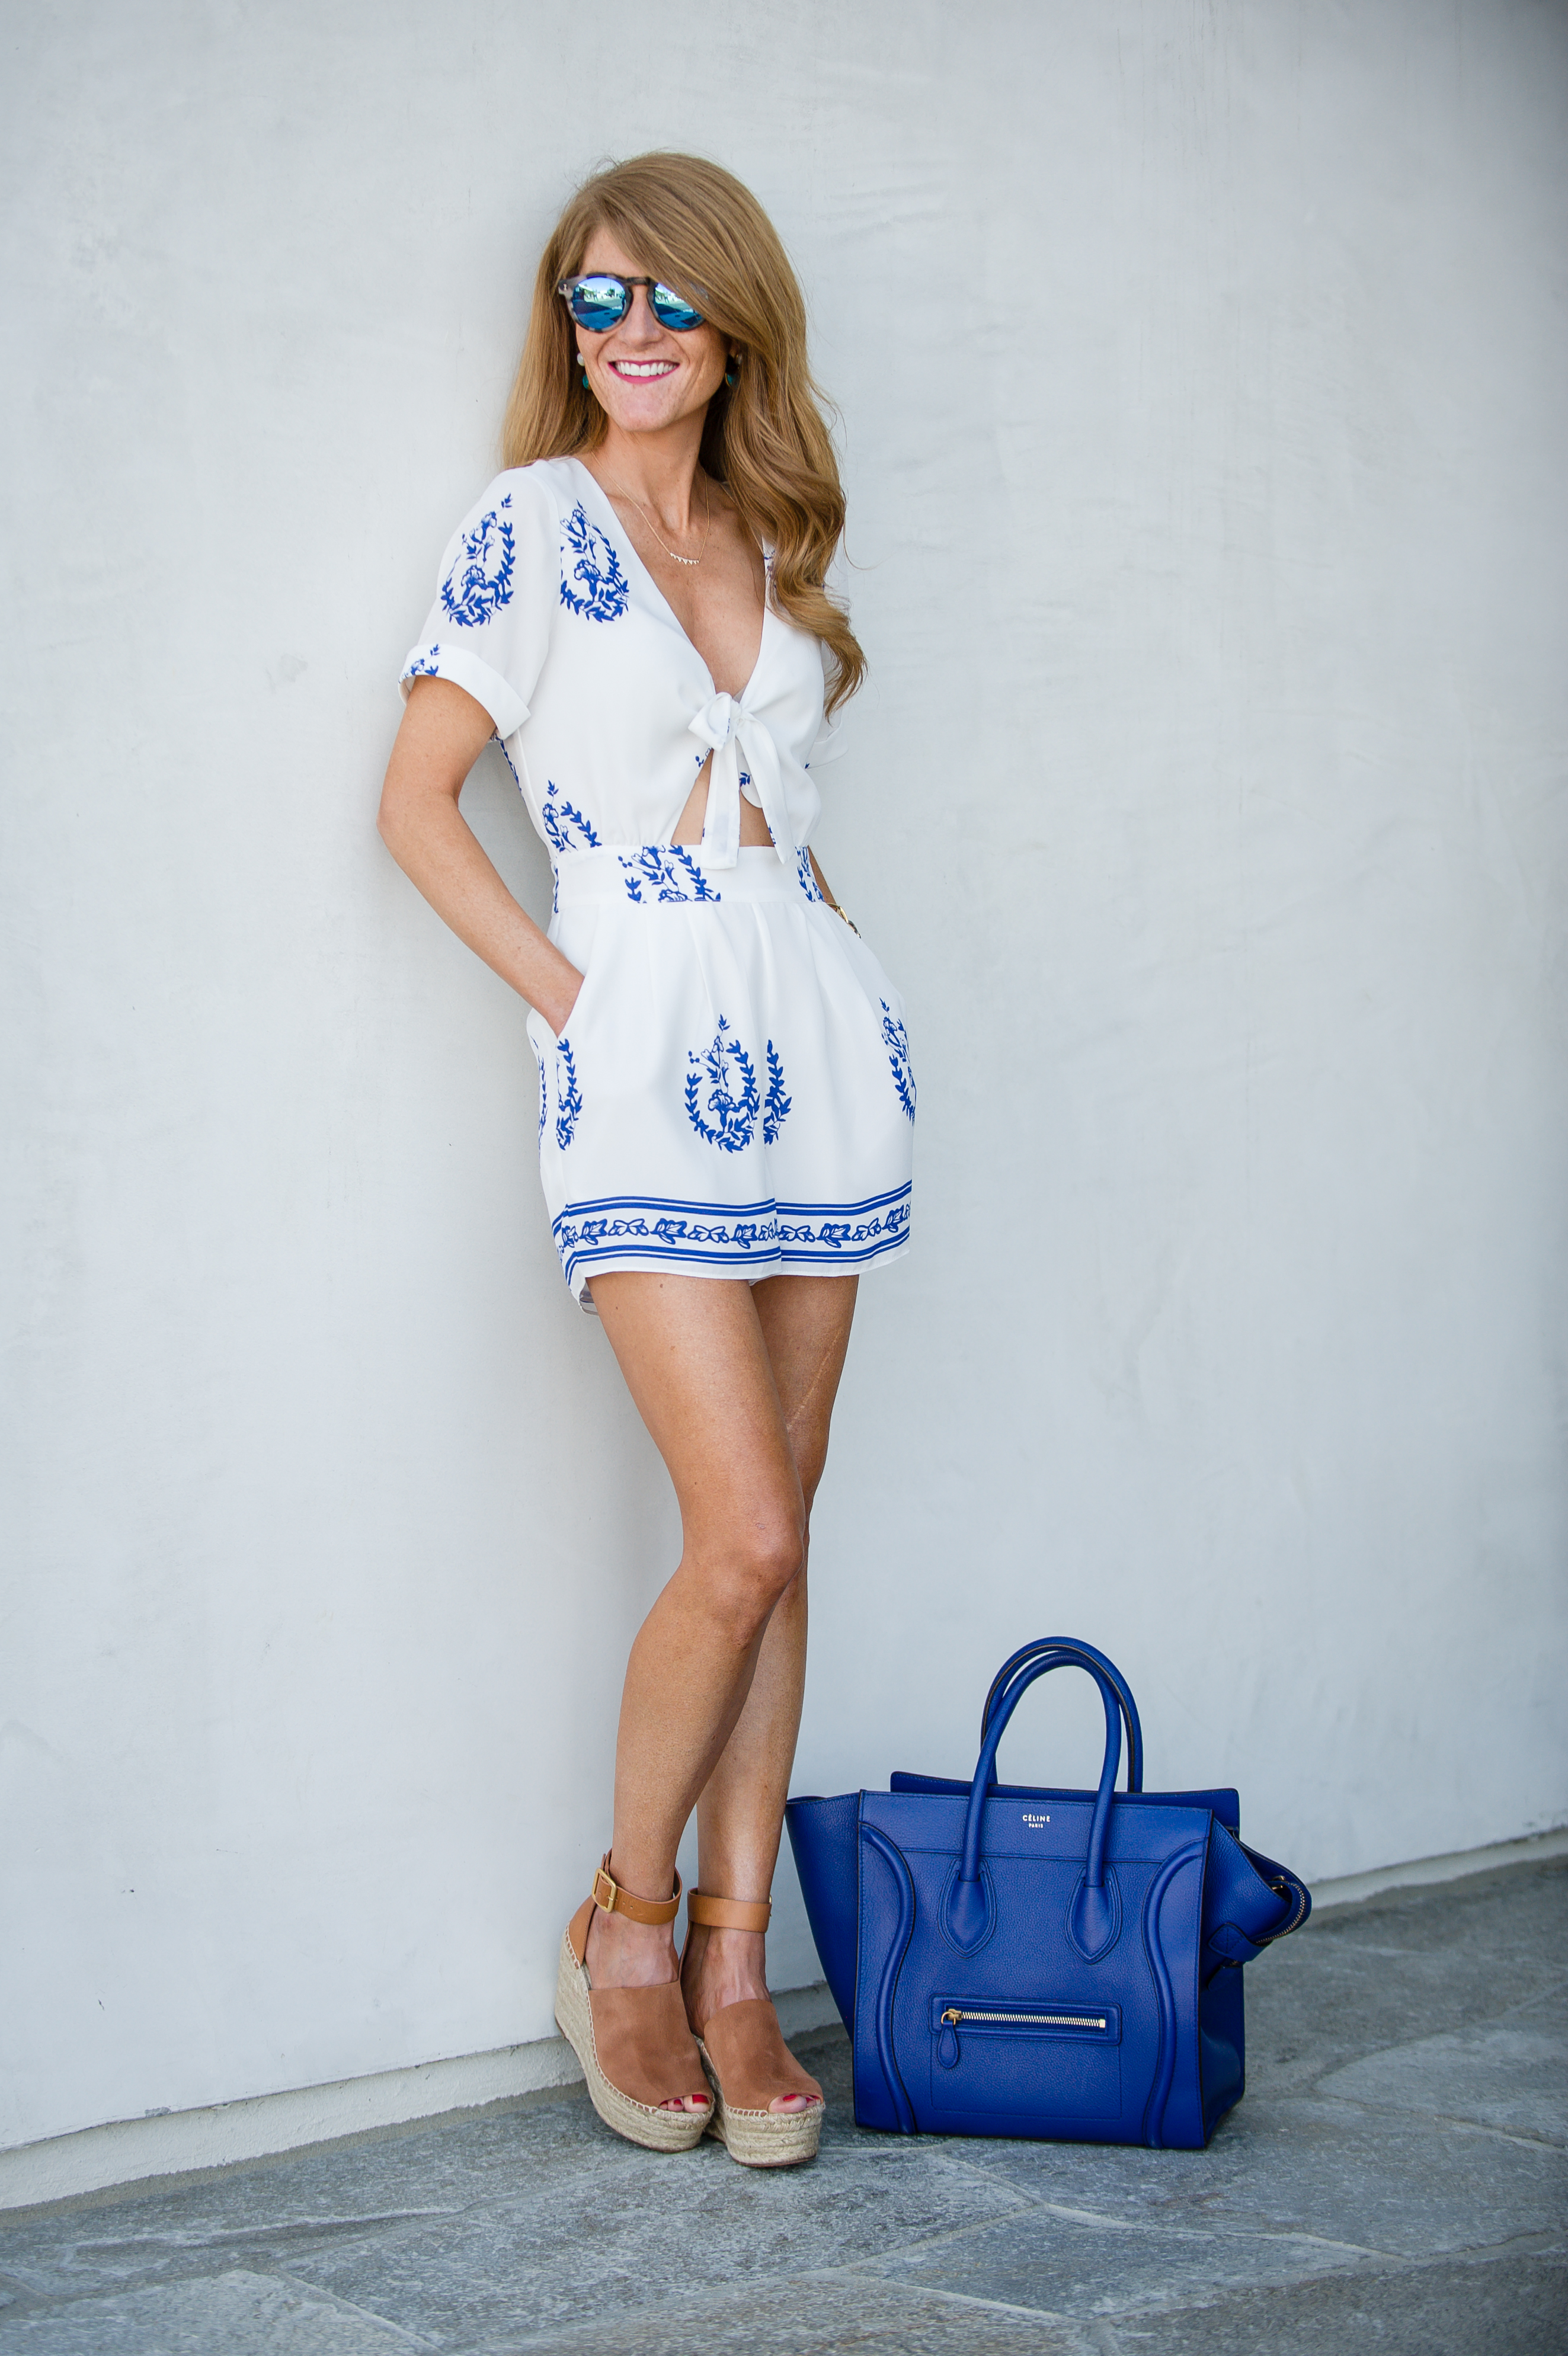 BLUE + WHITE OUTFIT!